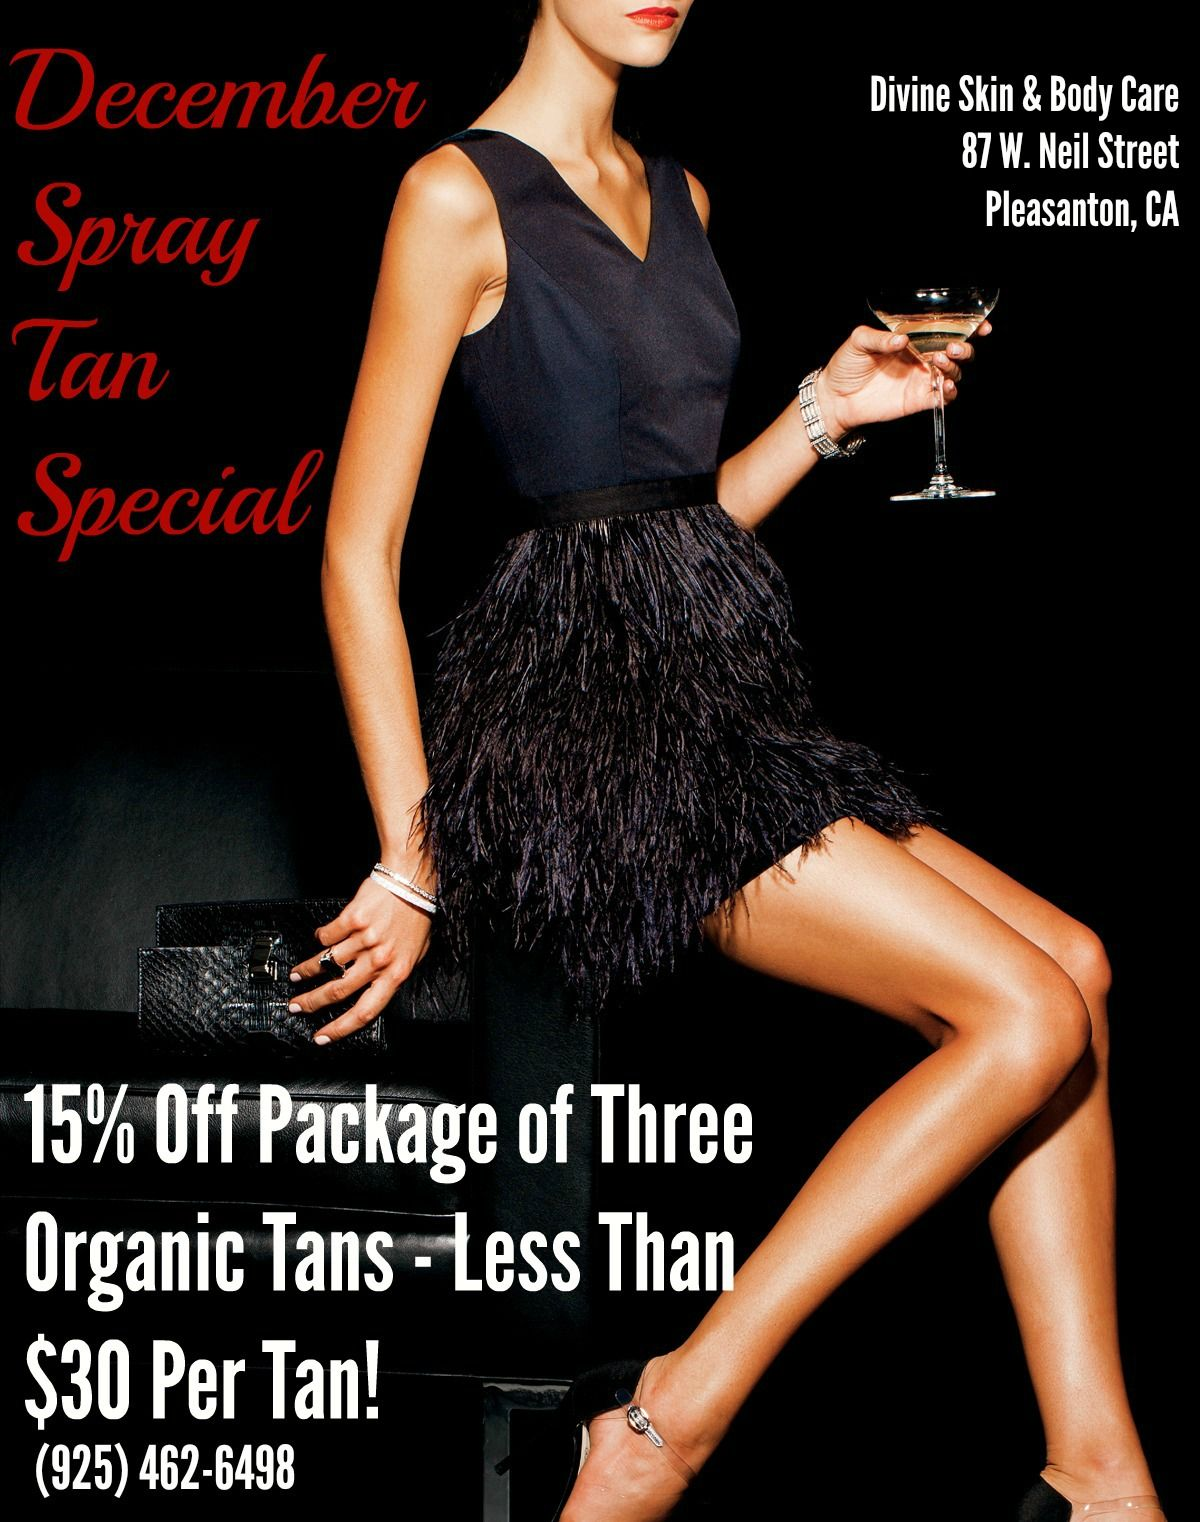 Now Is The Perfect Time To Get A Spray Tan Come In Before Your Next Holiday Party New Years Eve Karina Mussari Organic Spray Tan Body Care Organic Tan